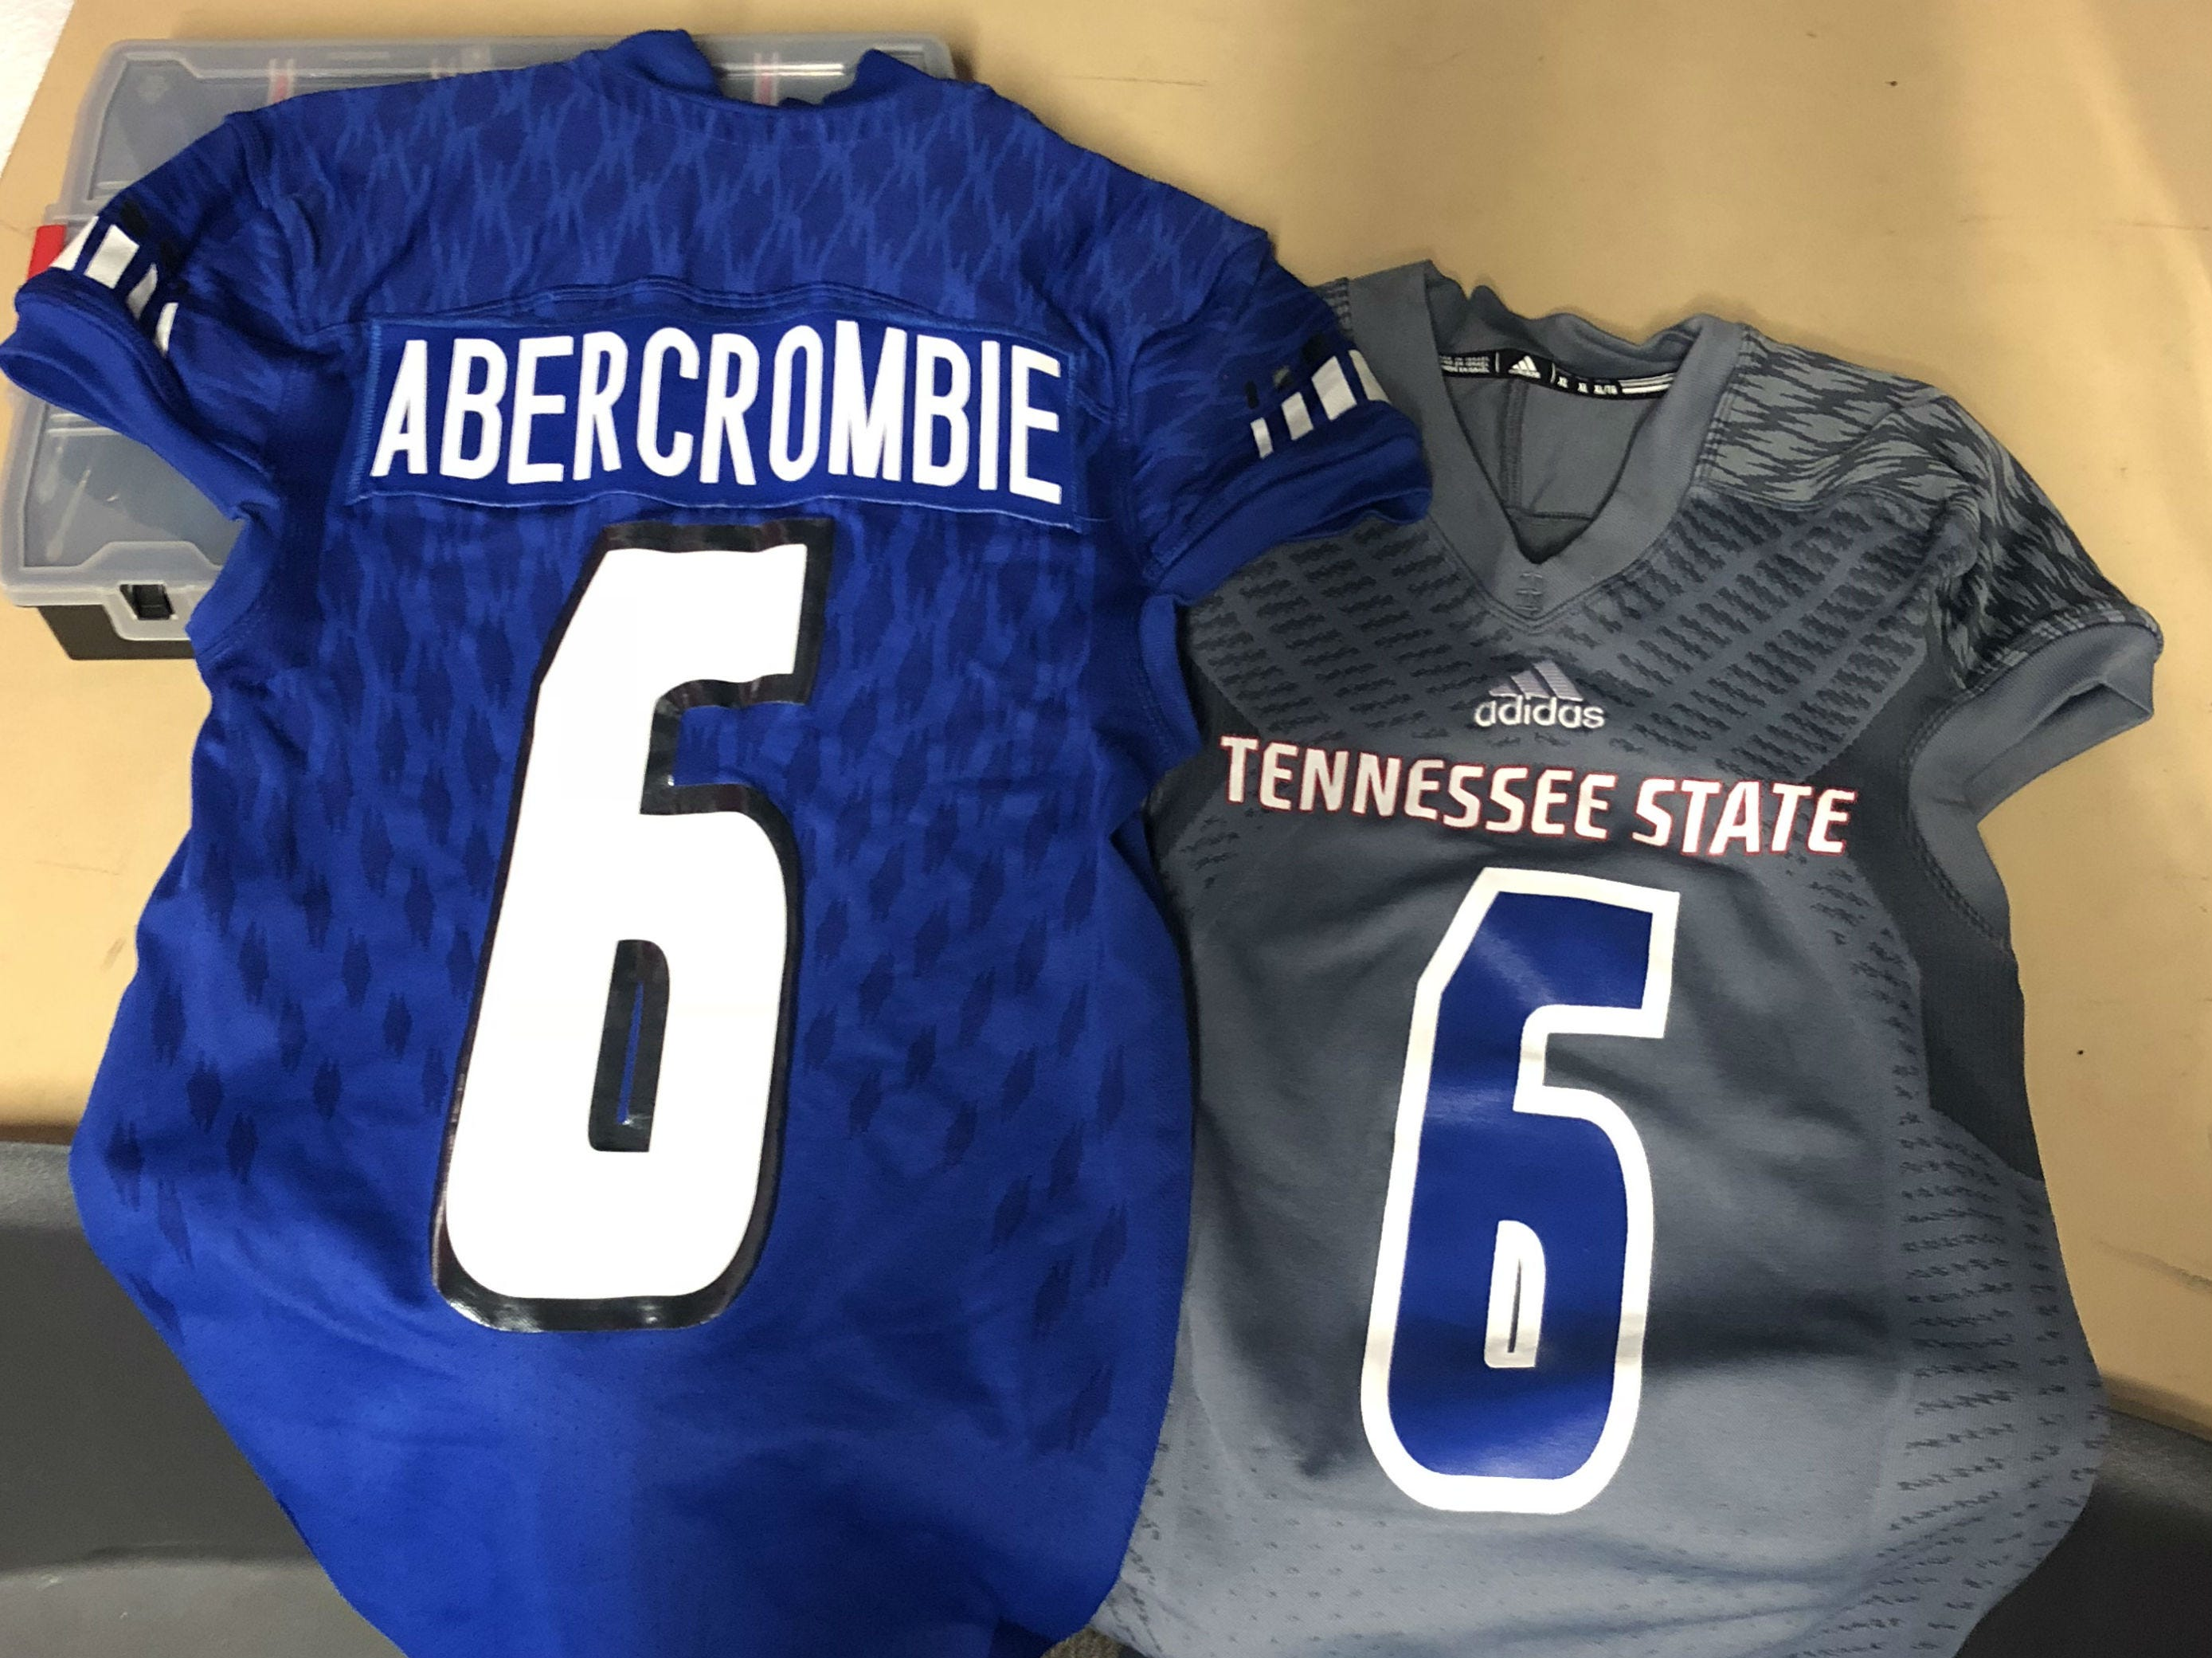 Tennessee State's players honored their teammate Christion Abercrombie, who suffered a serve head injury last week, by displaying his jerseys at Saturday's game at Austin Peay.